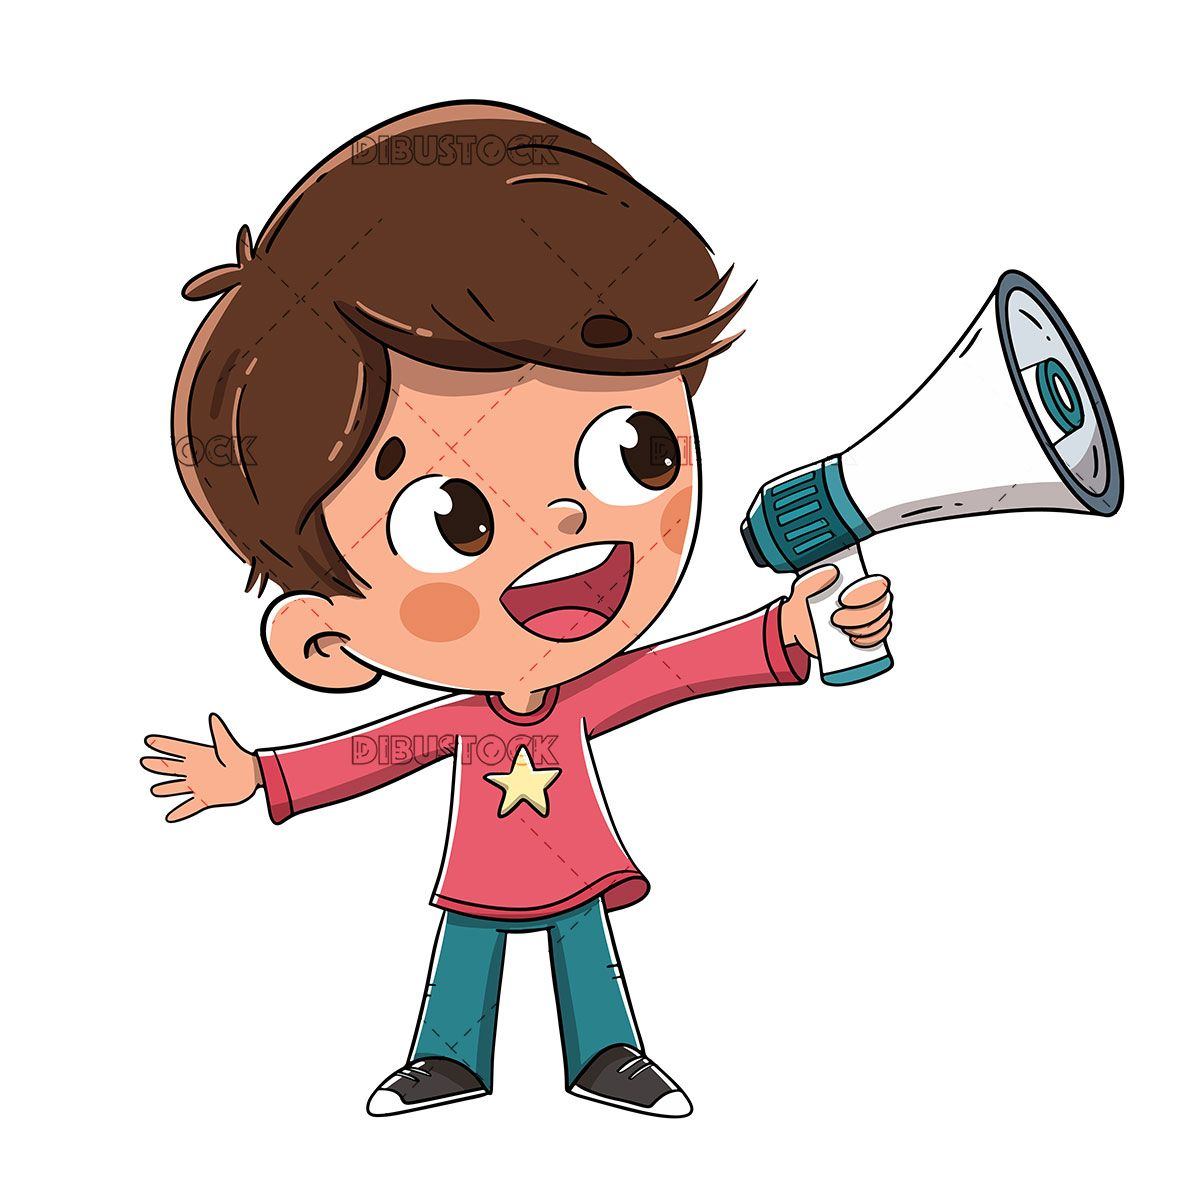 Child Talking With A Megaphone Or Speaker Cartoon Art Art Drawings For Kids Cartoon